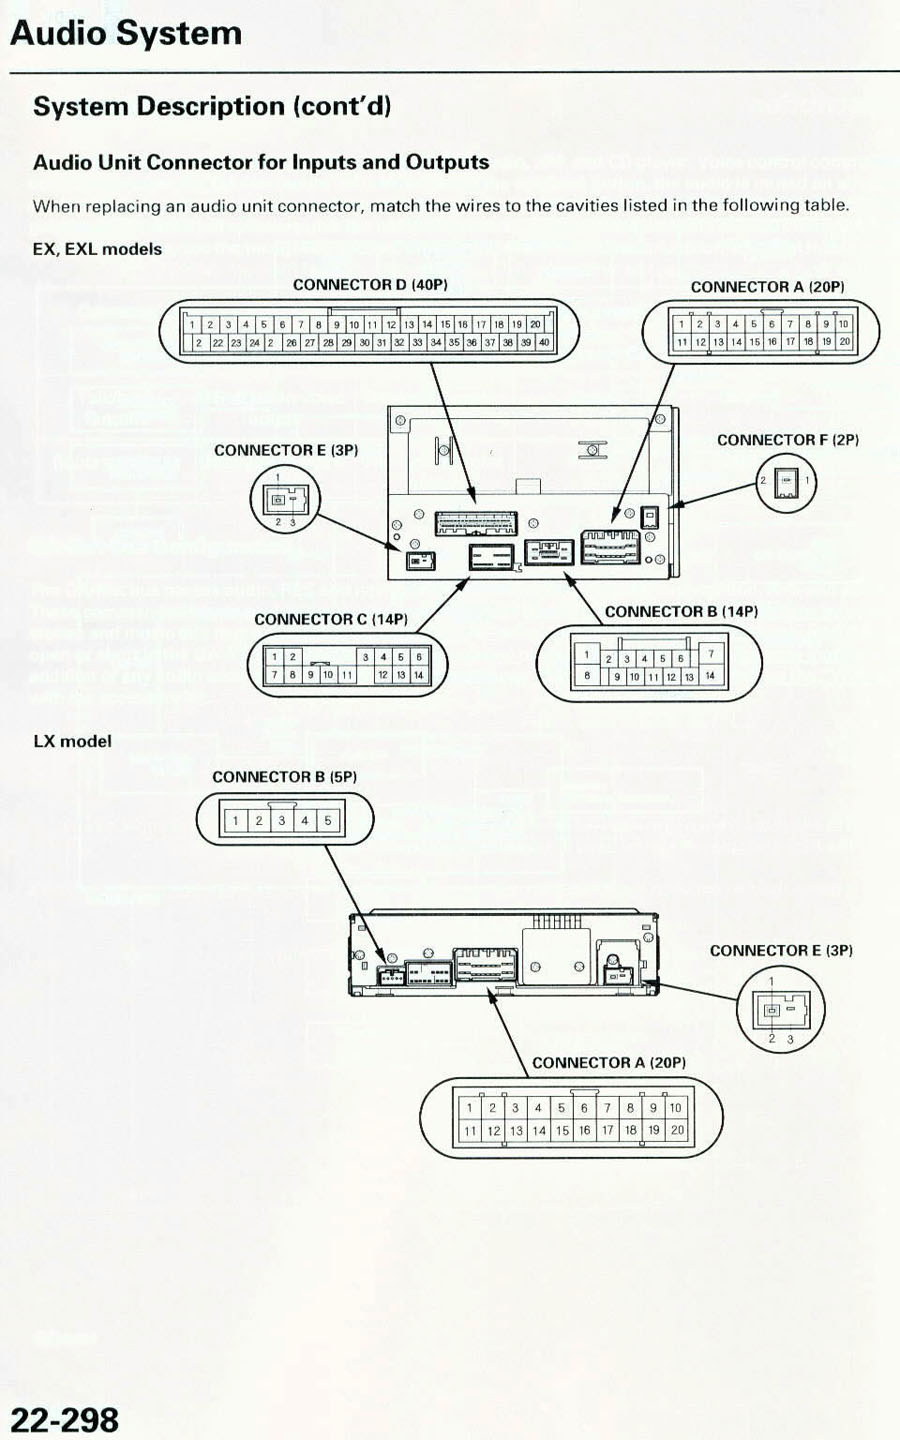 32969d1200063279 re factory subwoofer aftermarket hu audio_connector 2006 re factory subwoofer and aftermarket hu honda pilot honda 2011 honda pilot wiring diagram at sewacar.co